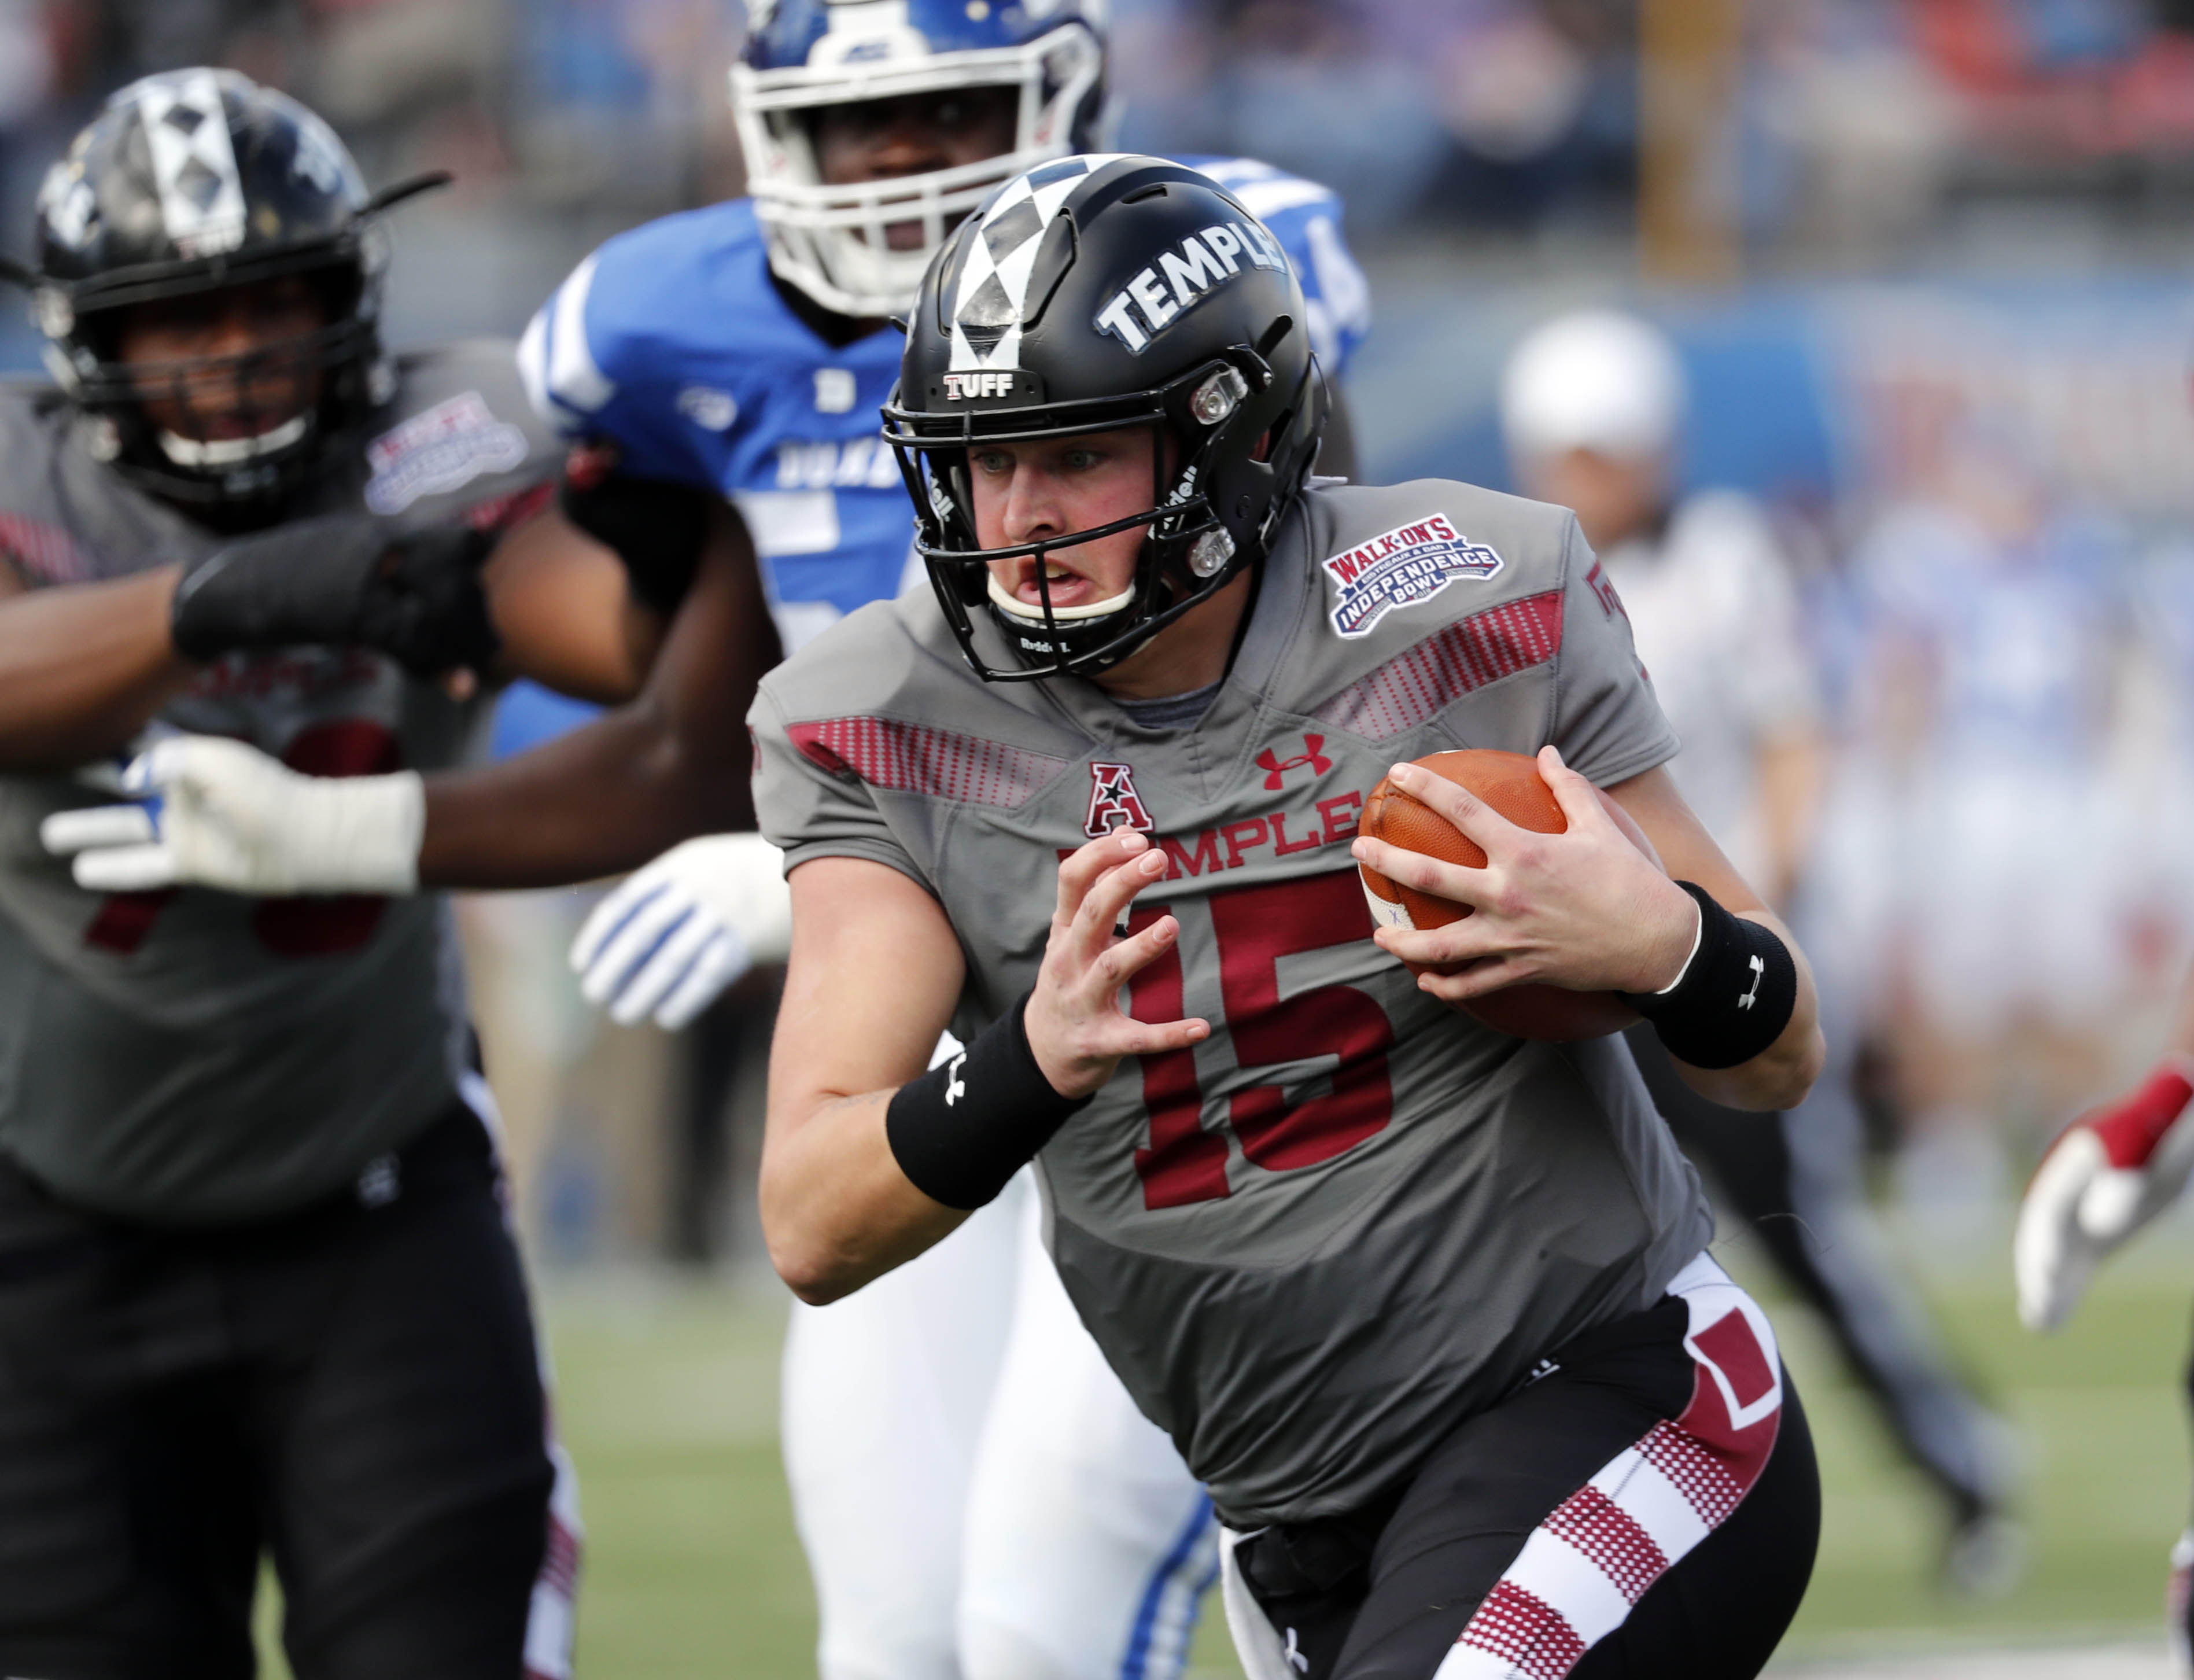 """<div class=""""meta image-caption""""><div class=""""origin-logo origin-image ap""""><span>AP</span></div><span class=""""caption-text"""">Temple quarterback Anthony Russo (15) runs for a short gain against Duke during the first half of the Independence Bowl, (Rogelio V. Solis)</span></div>"""